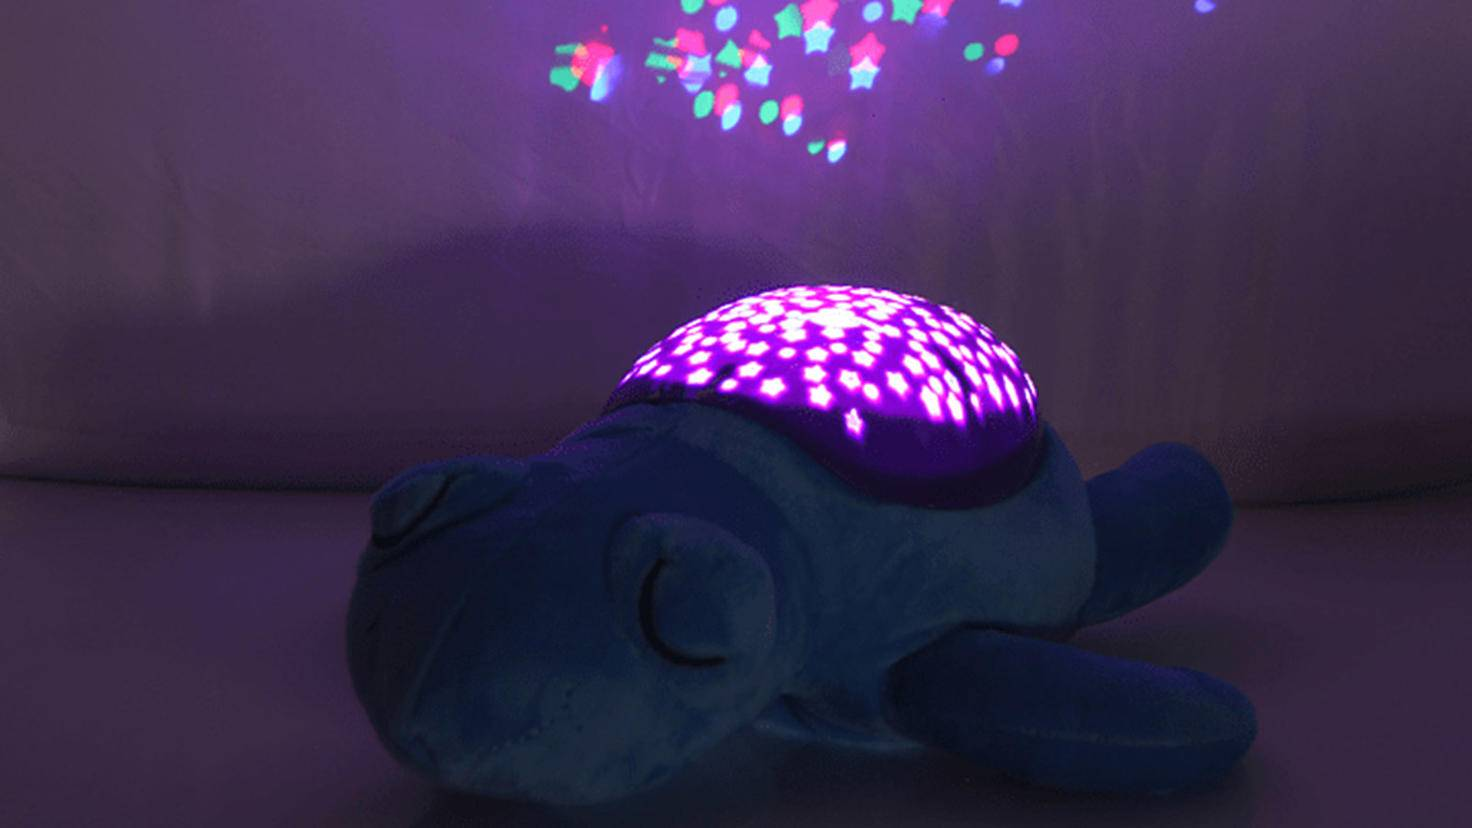 Children's night light as a plush toy with a starry sky